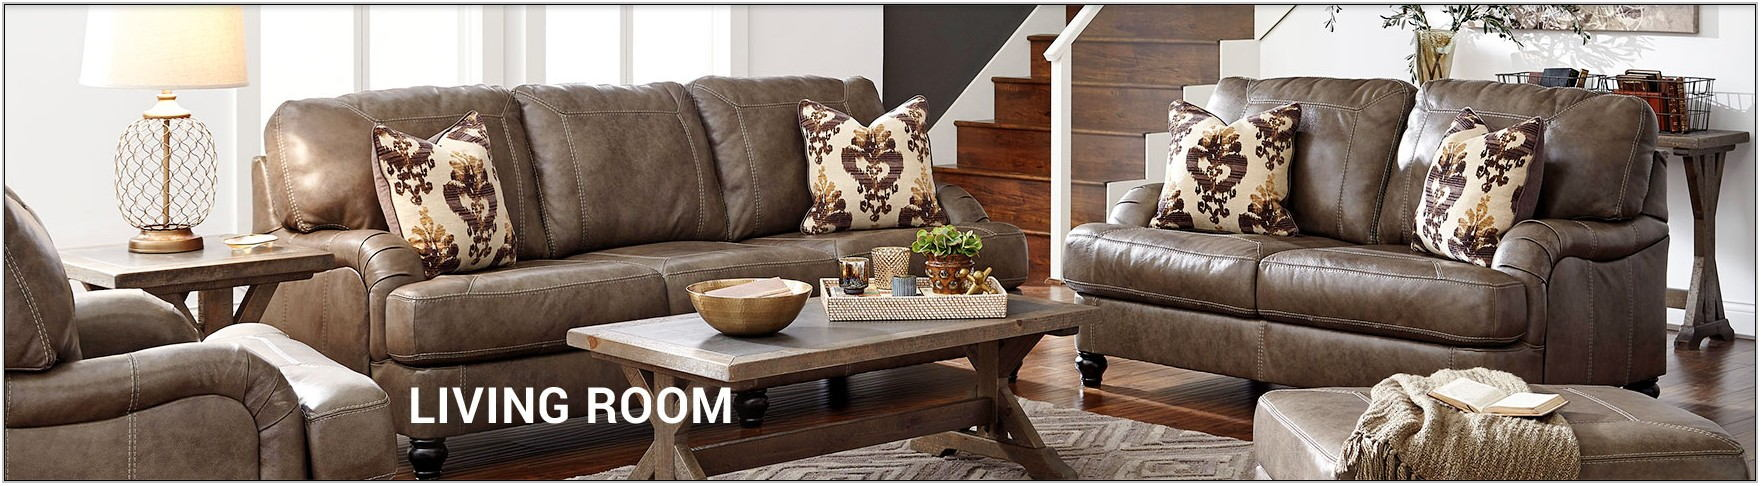 Living Room Furniture Spokane